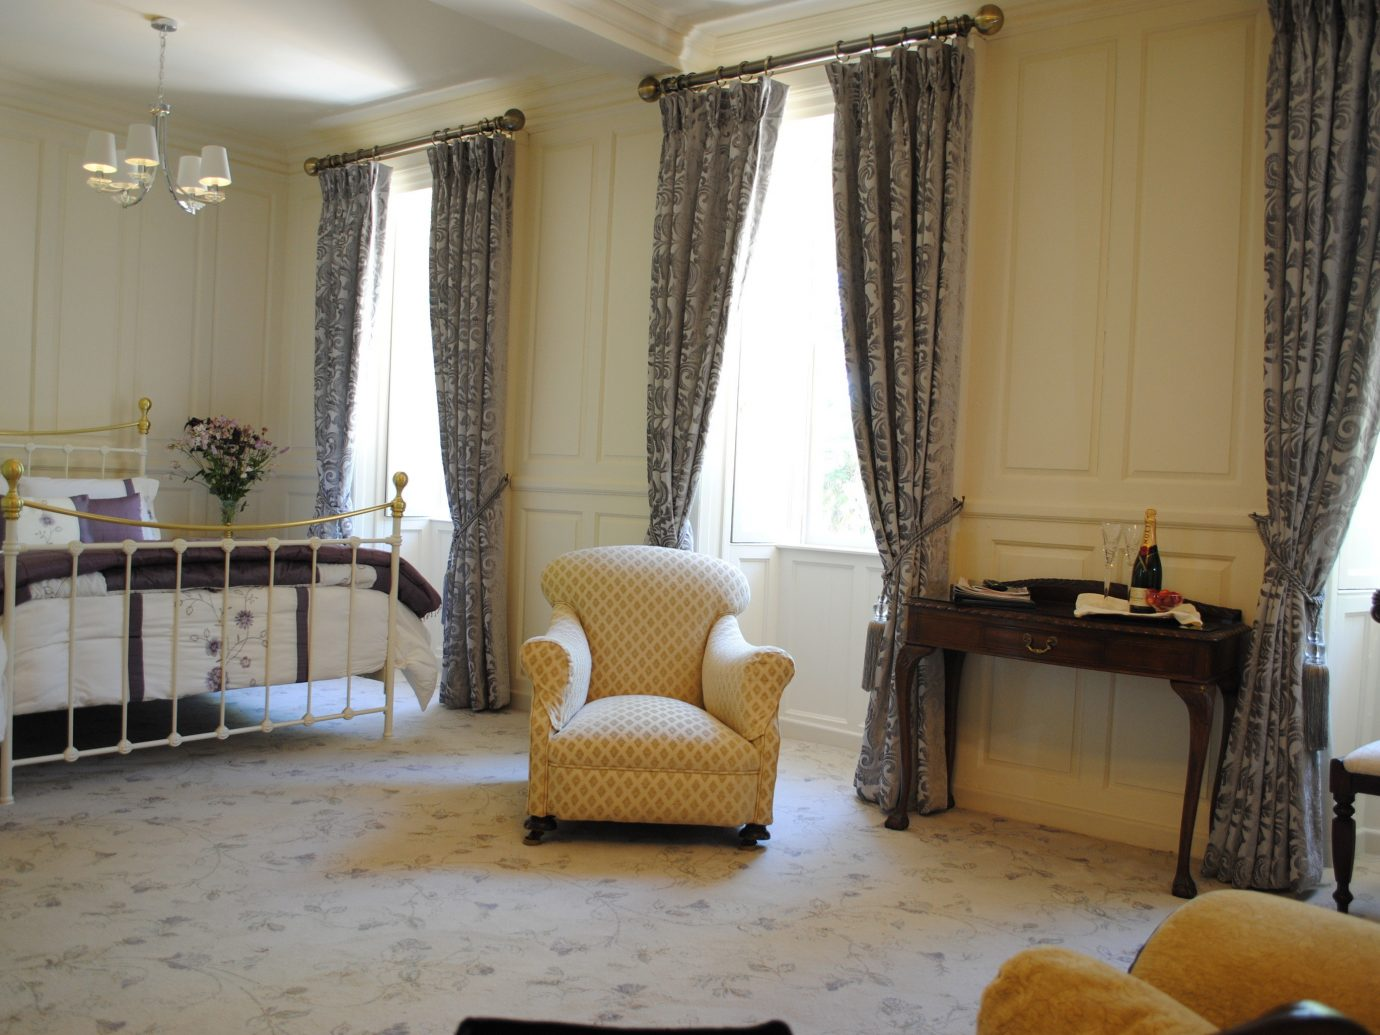 europe Hotels Ireland indoor wall floor room Living living room property interior design curtain window window treatment textile window covering furniture home Suite real estate ceiling Bedroom estate flooring decor interior designer window blind decorated